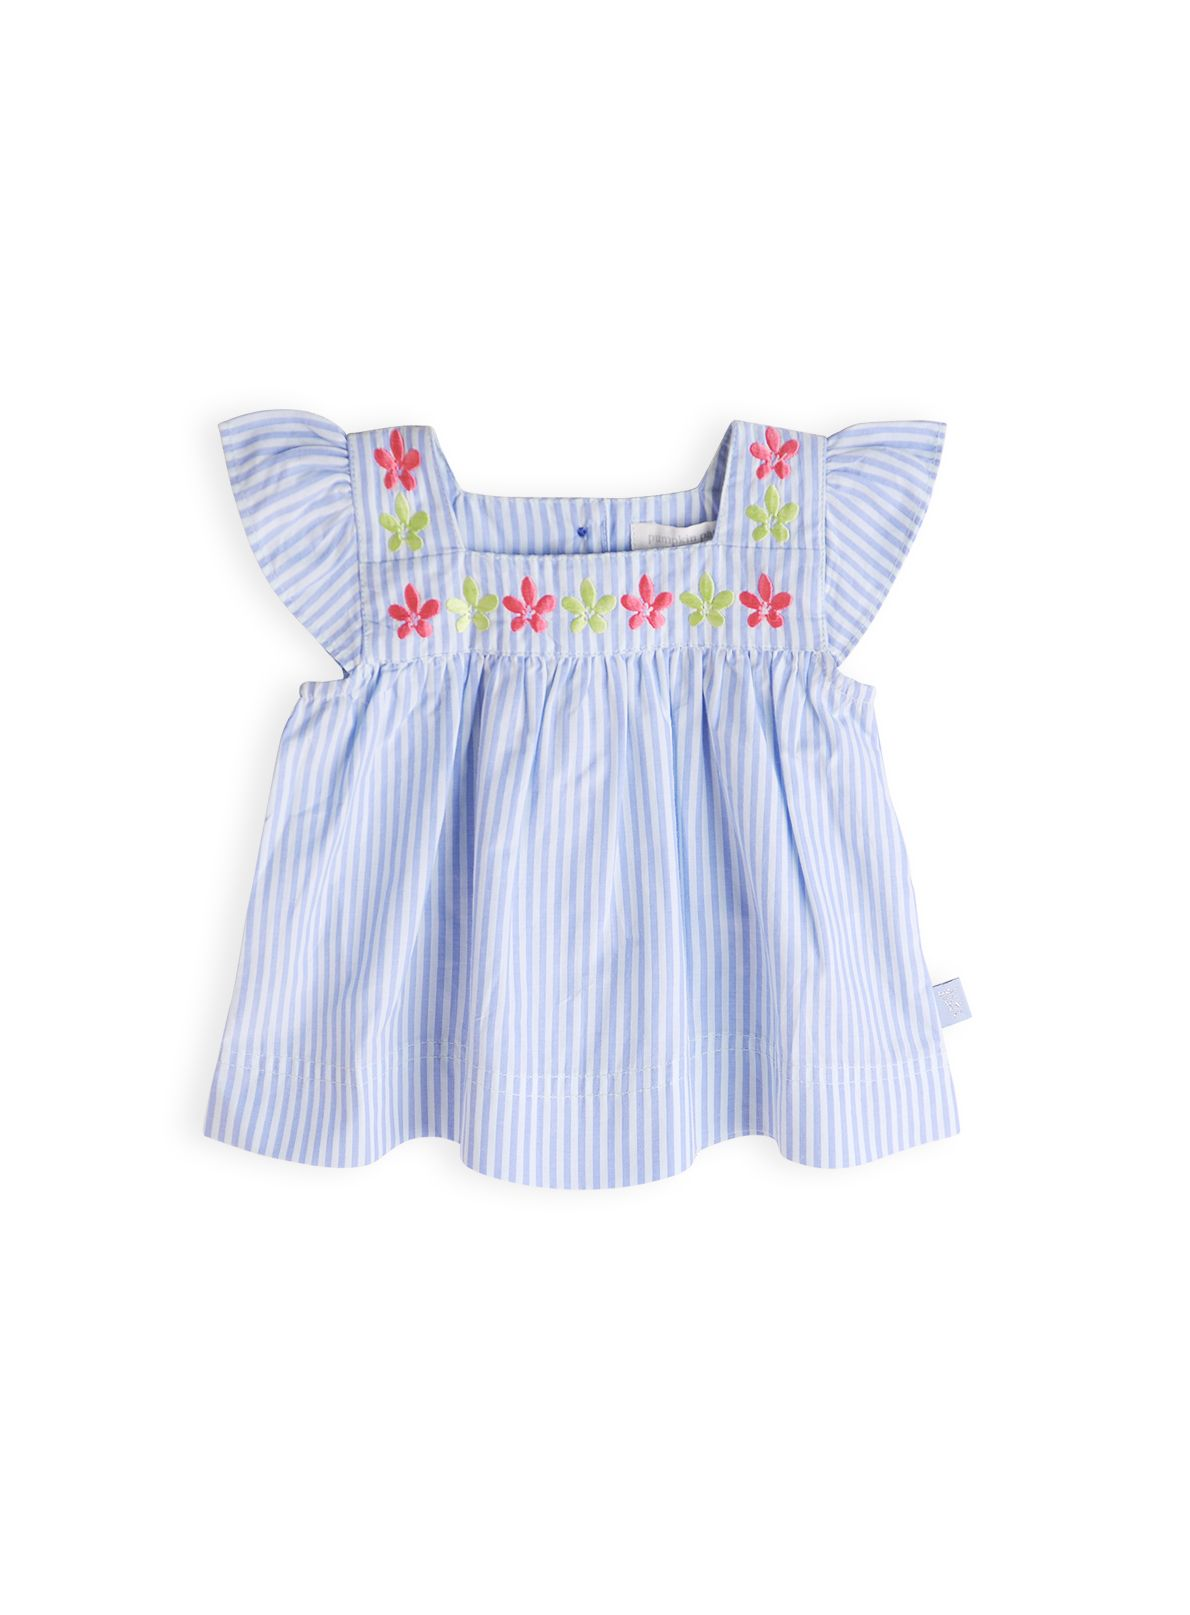 Girls frangipani embroidered top